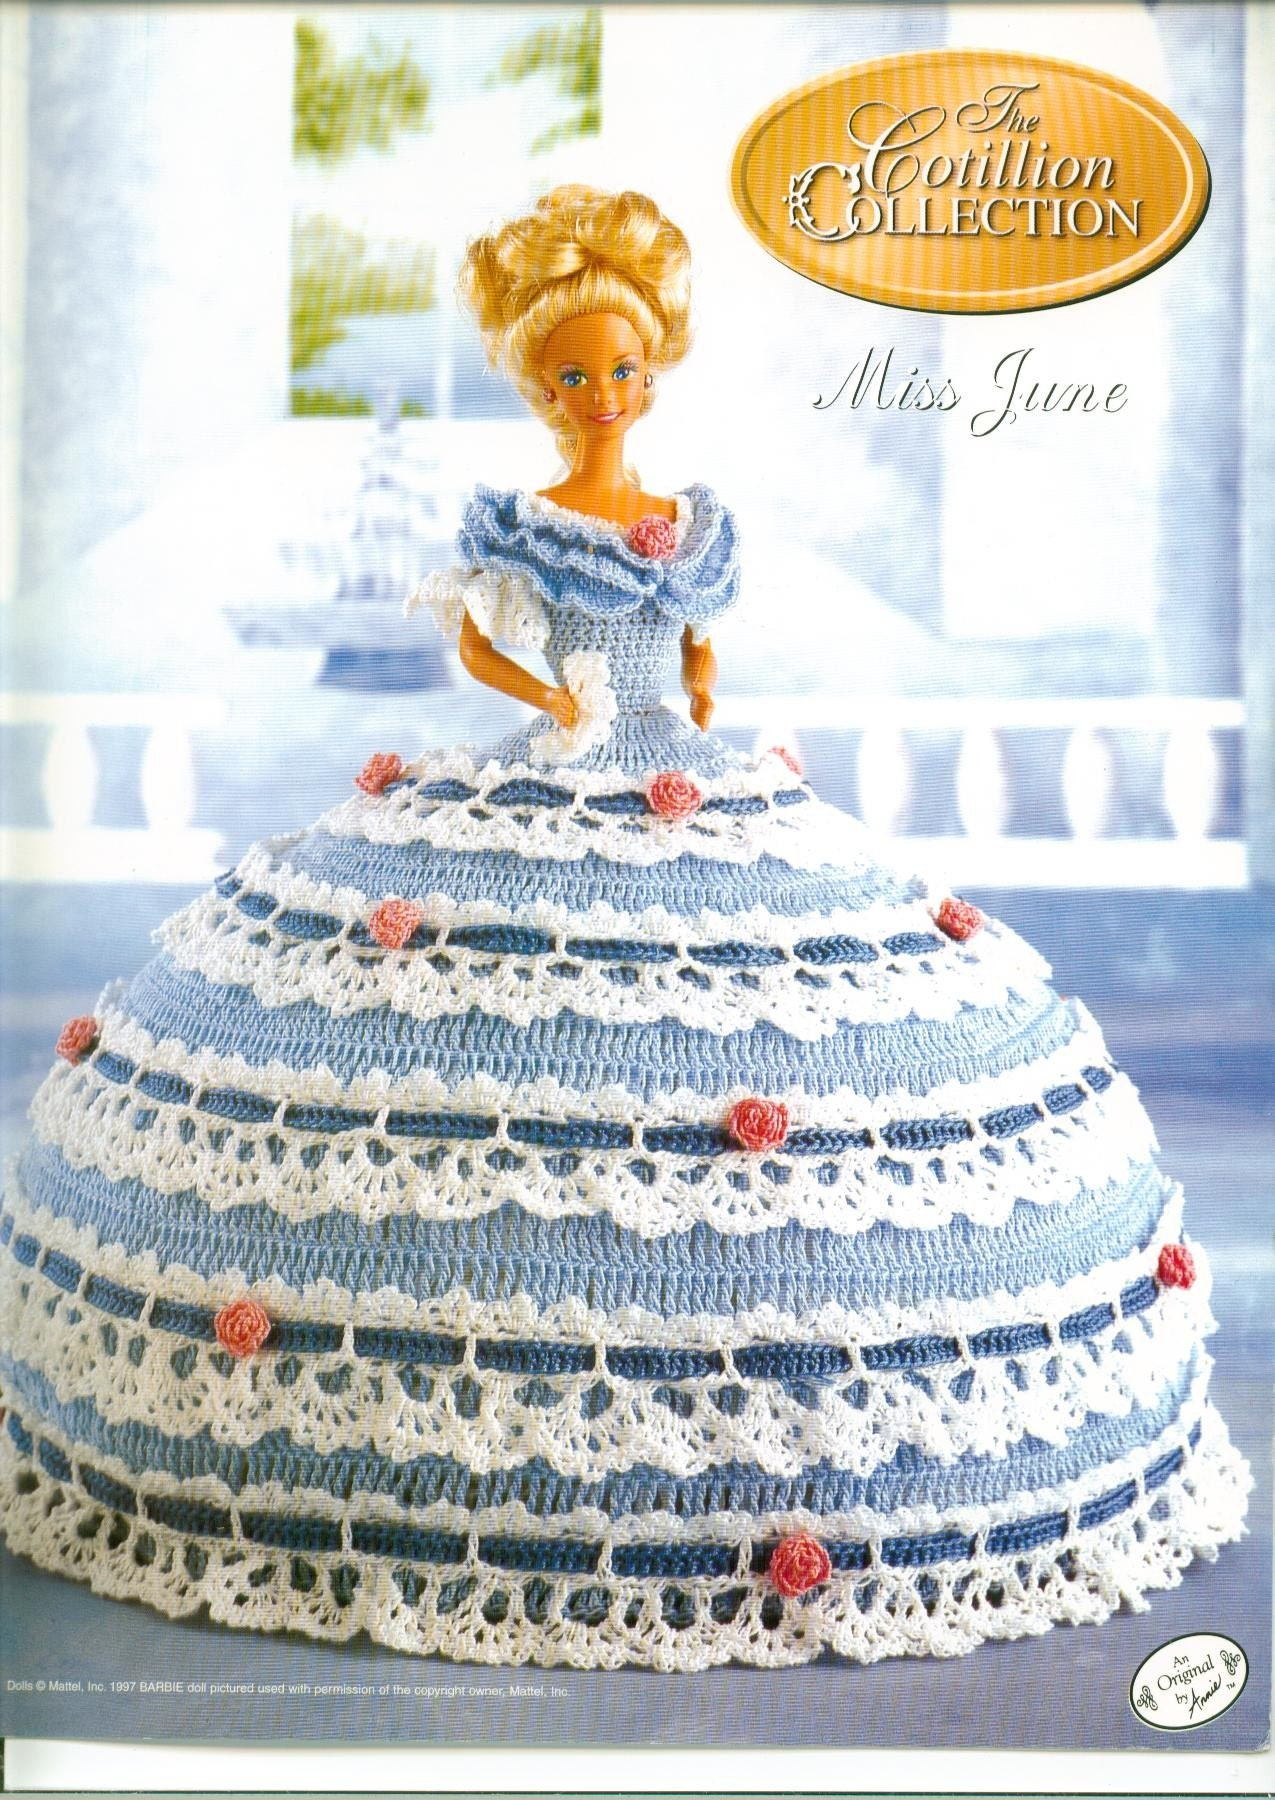 Annies Attic Crochet Patterns : Barbie crochet leaflet Annies Attic Fashion by victoriandolls